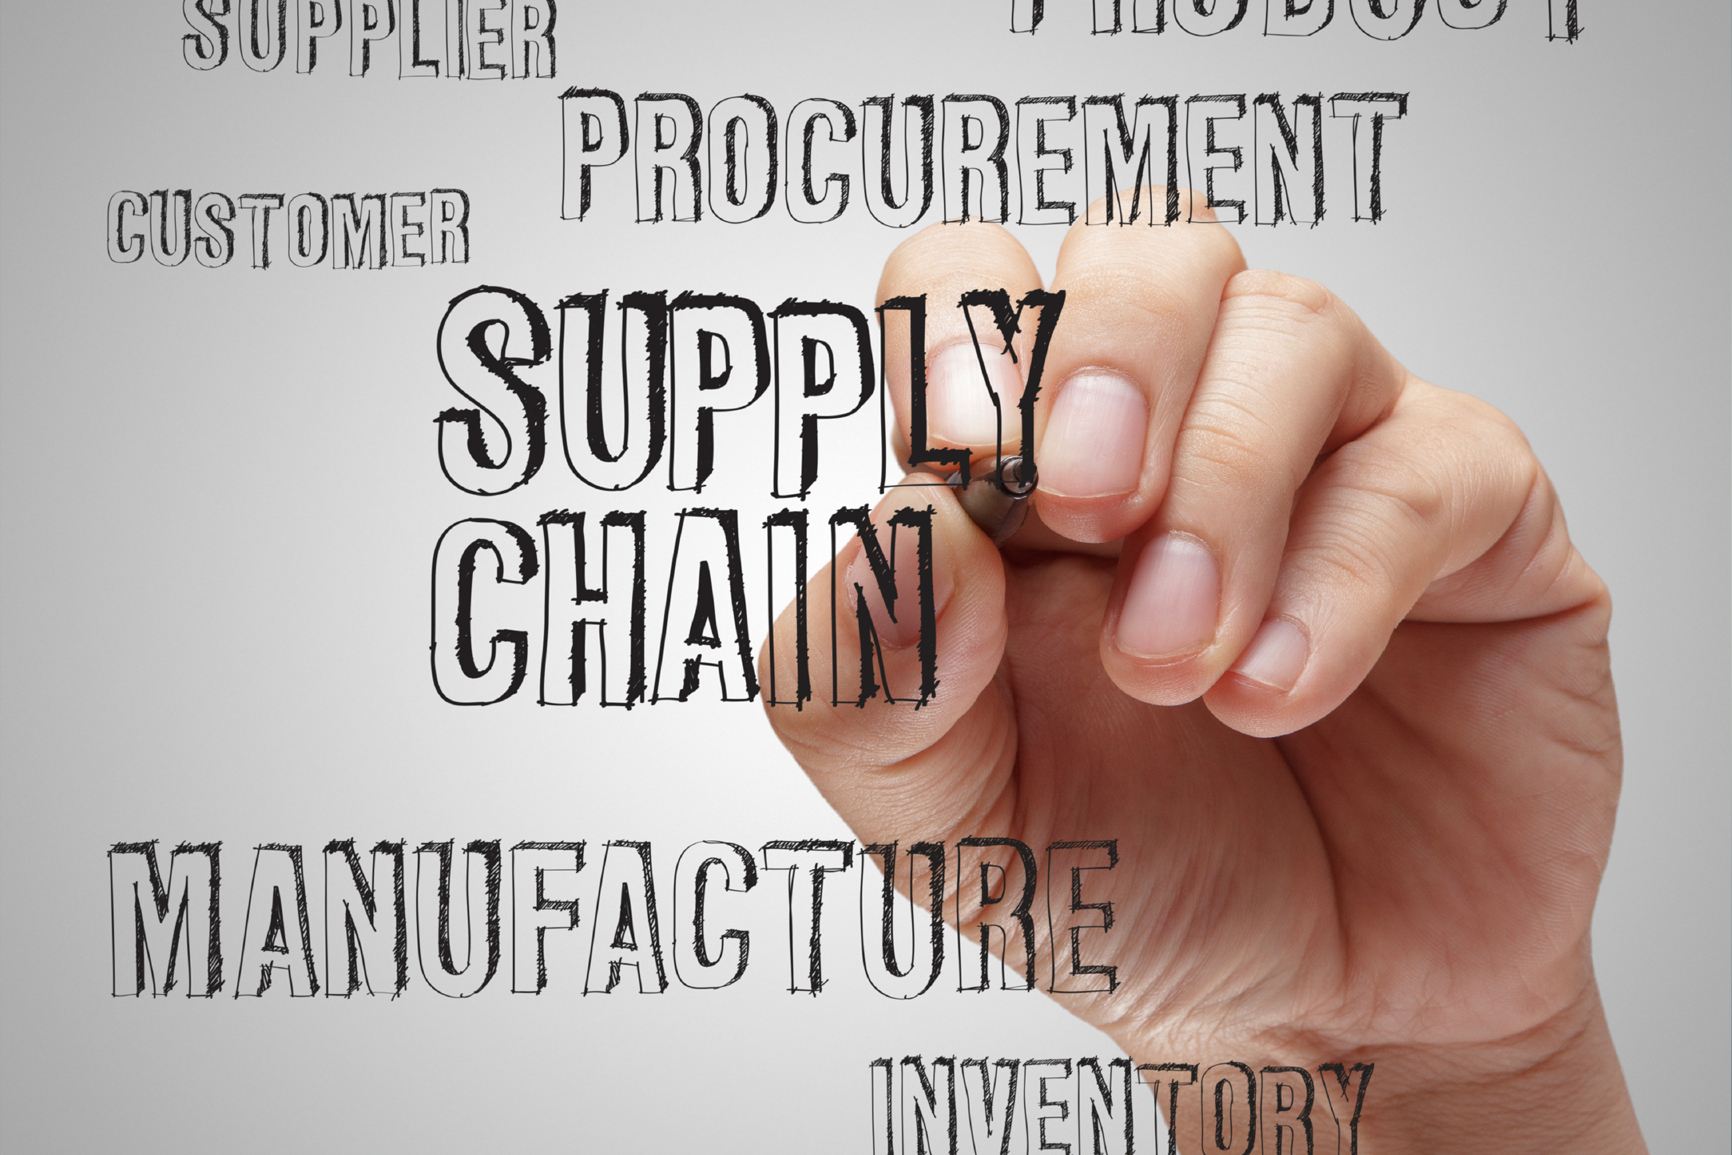 importance of supply chain management: